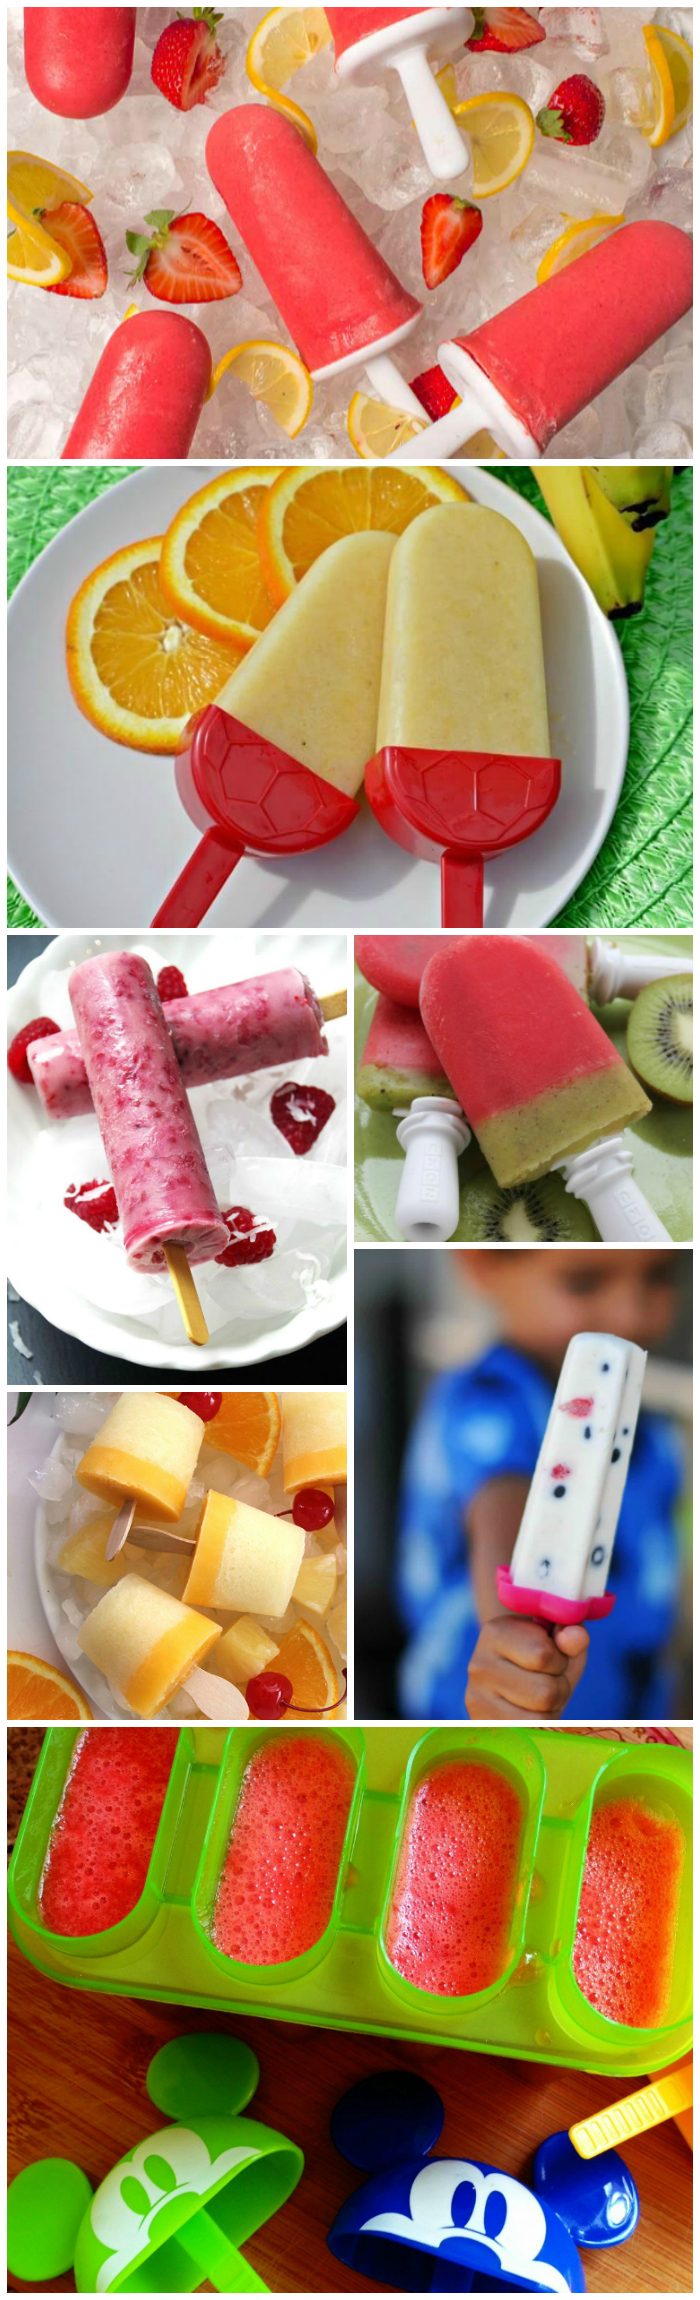 15 Homemade Fruit Popsicle Recipes